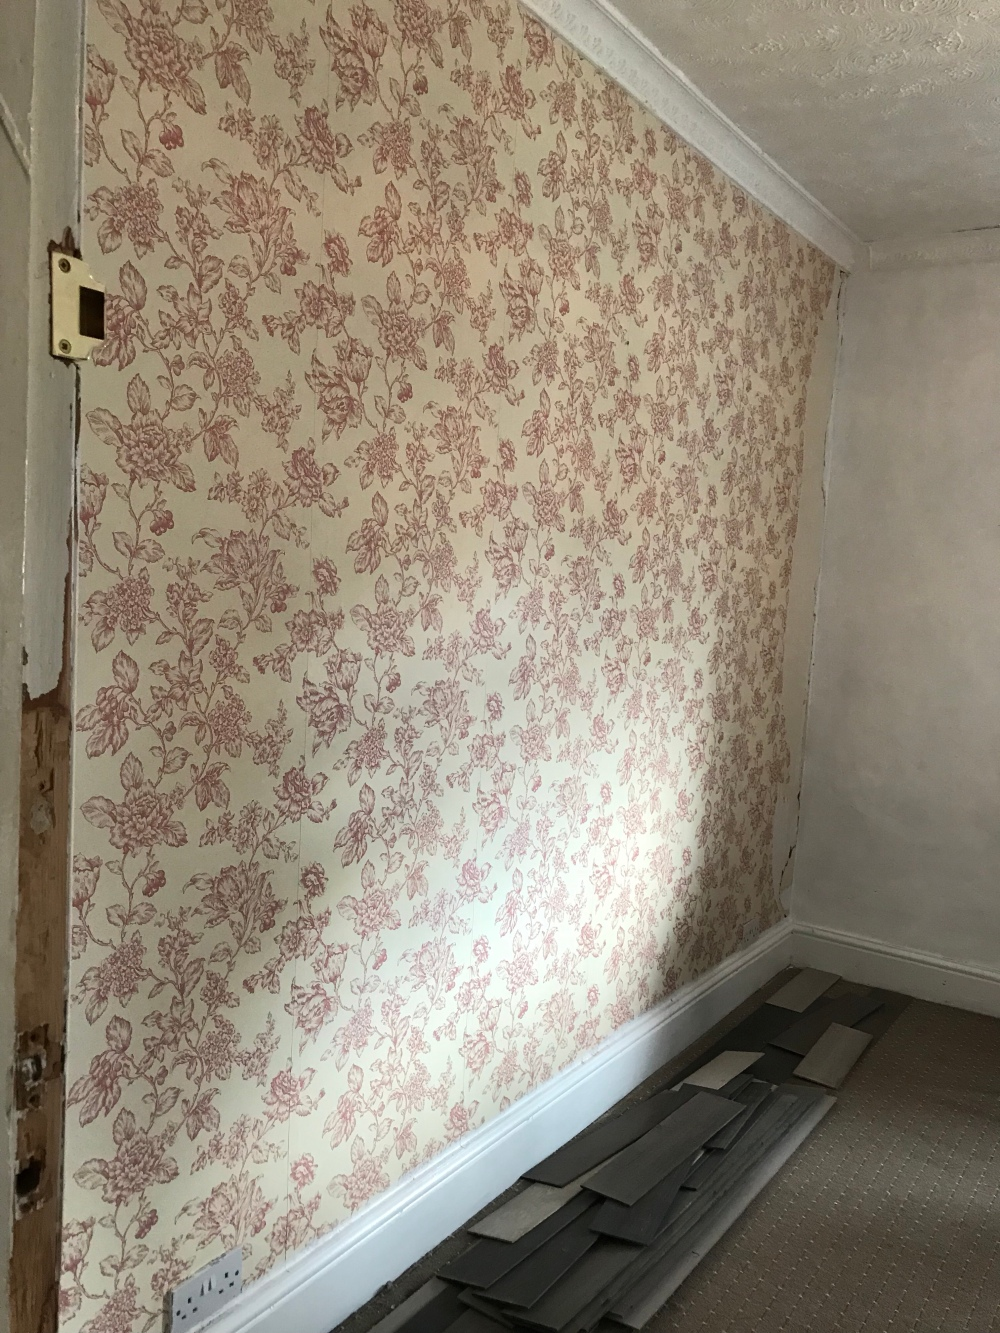 Before Image of a dated floral wallpaper